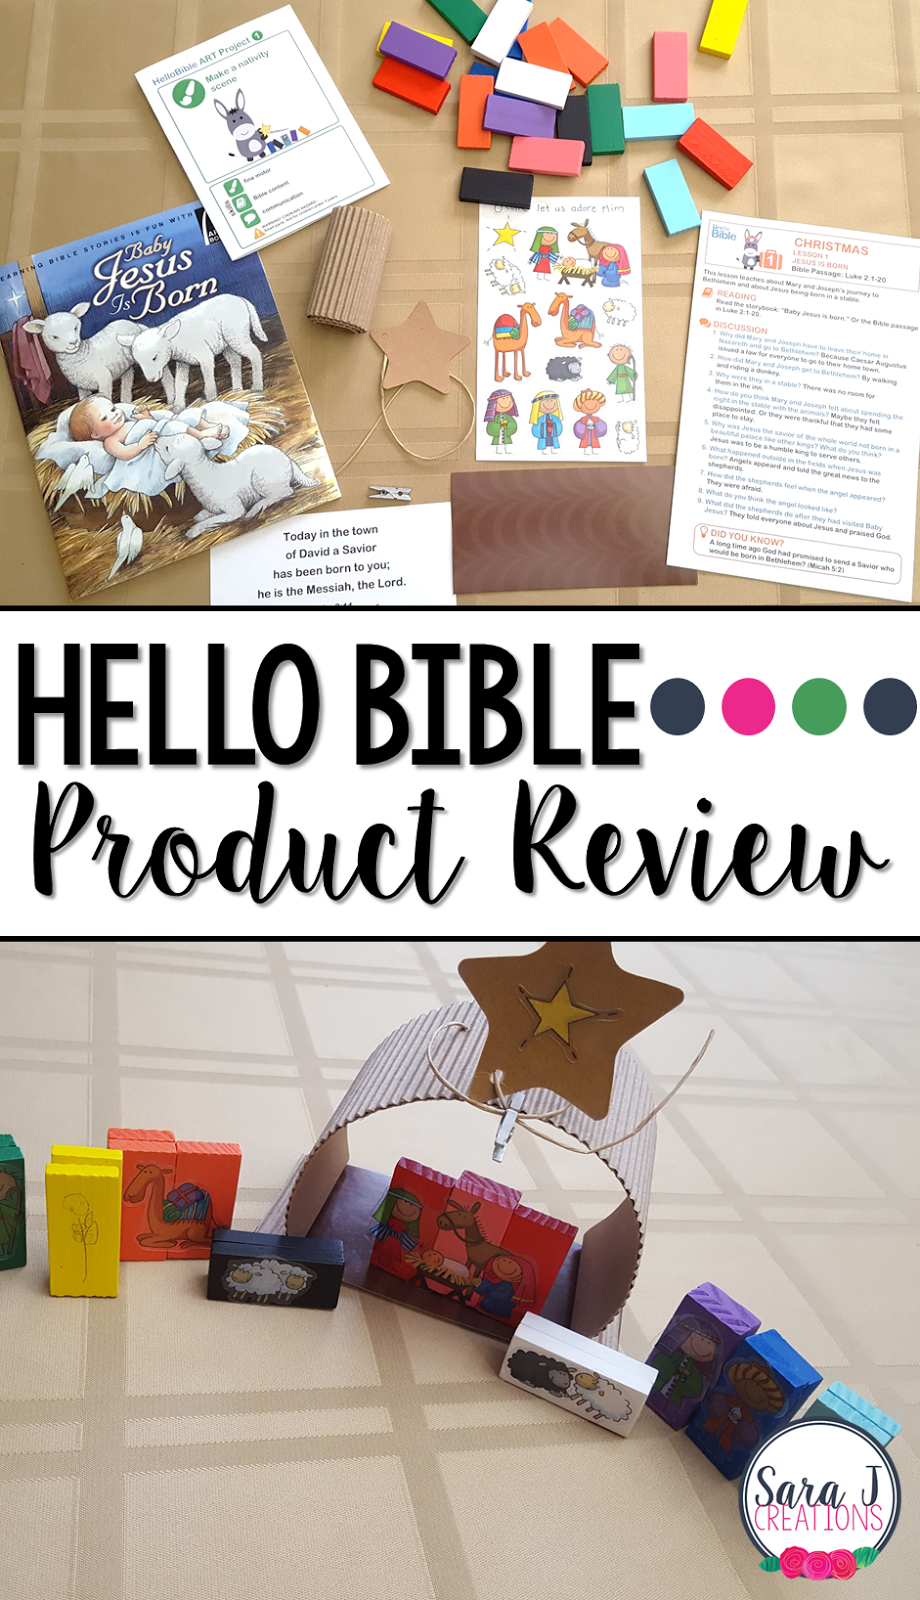 A review of the HelloBible subscription box service for kids. Comes complete with a Bible story book, related crafts, lesson plans and extra activities. Makes the perfect gift for the kids on your list! #hellobible #sarajcreations